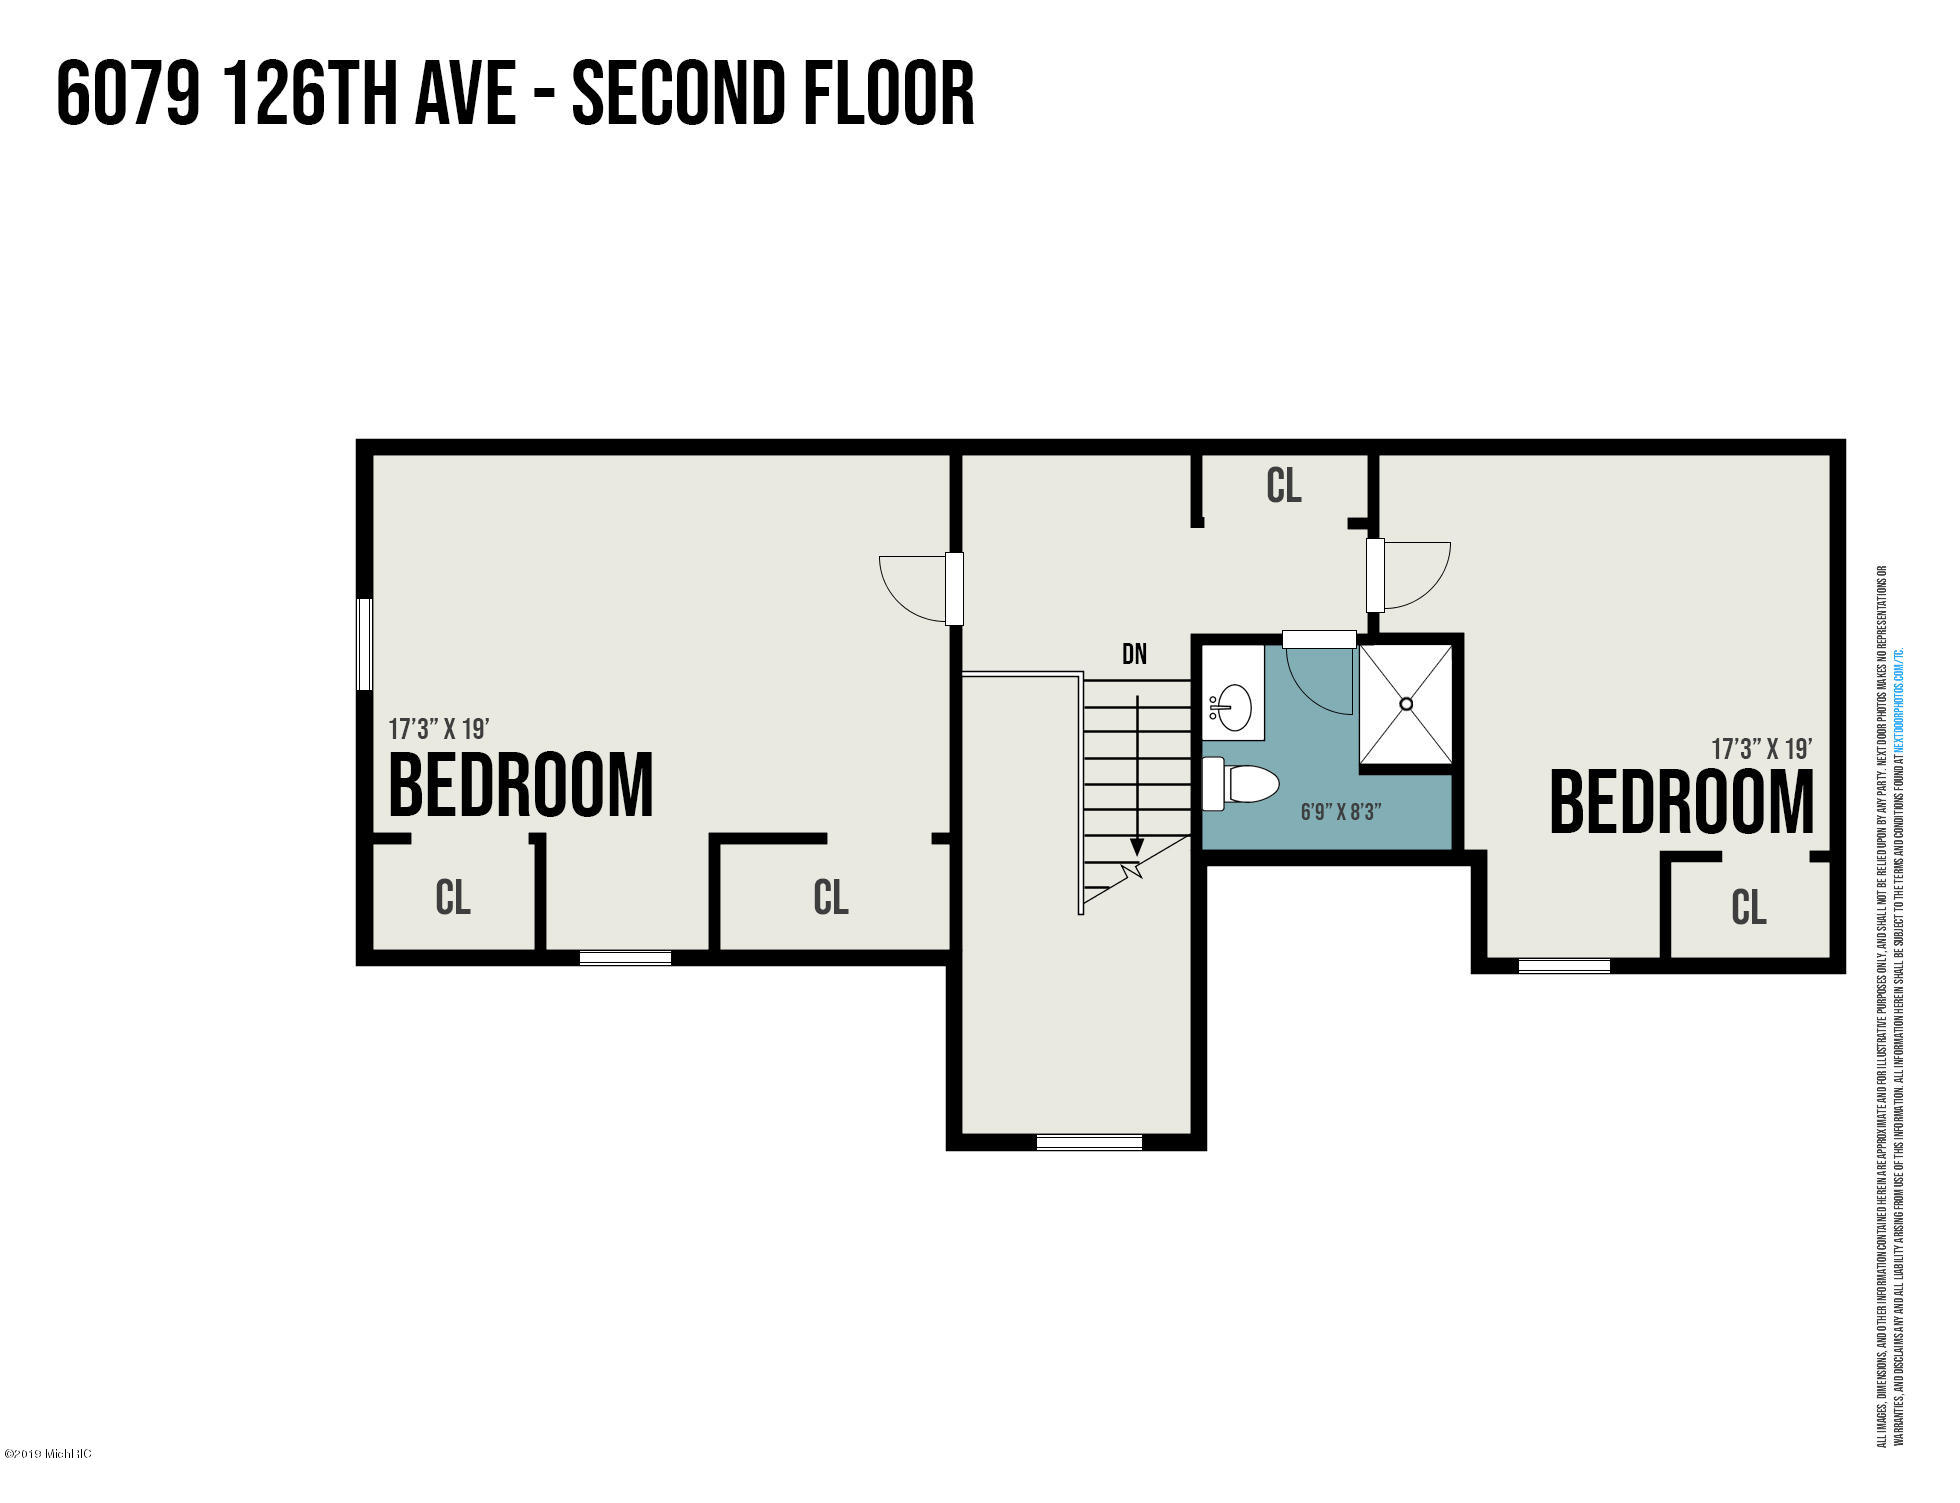 6079 126th Ave Floor Plan House Second L